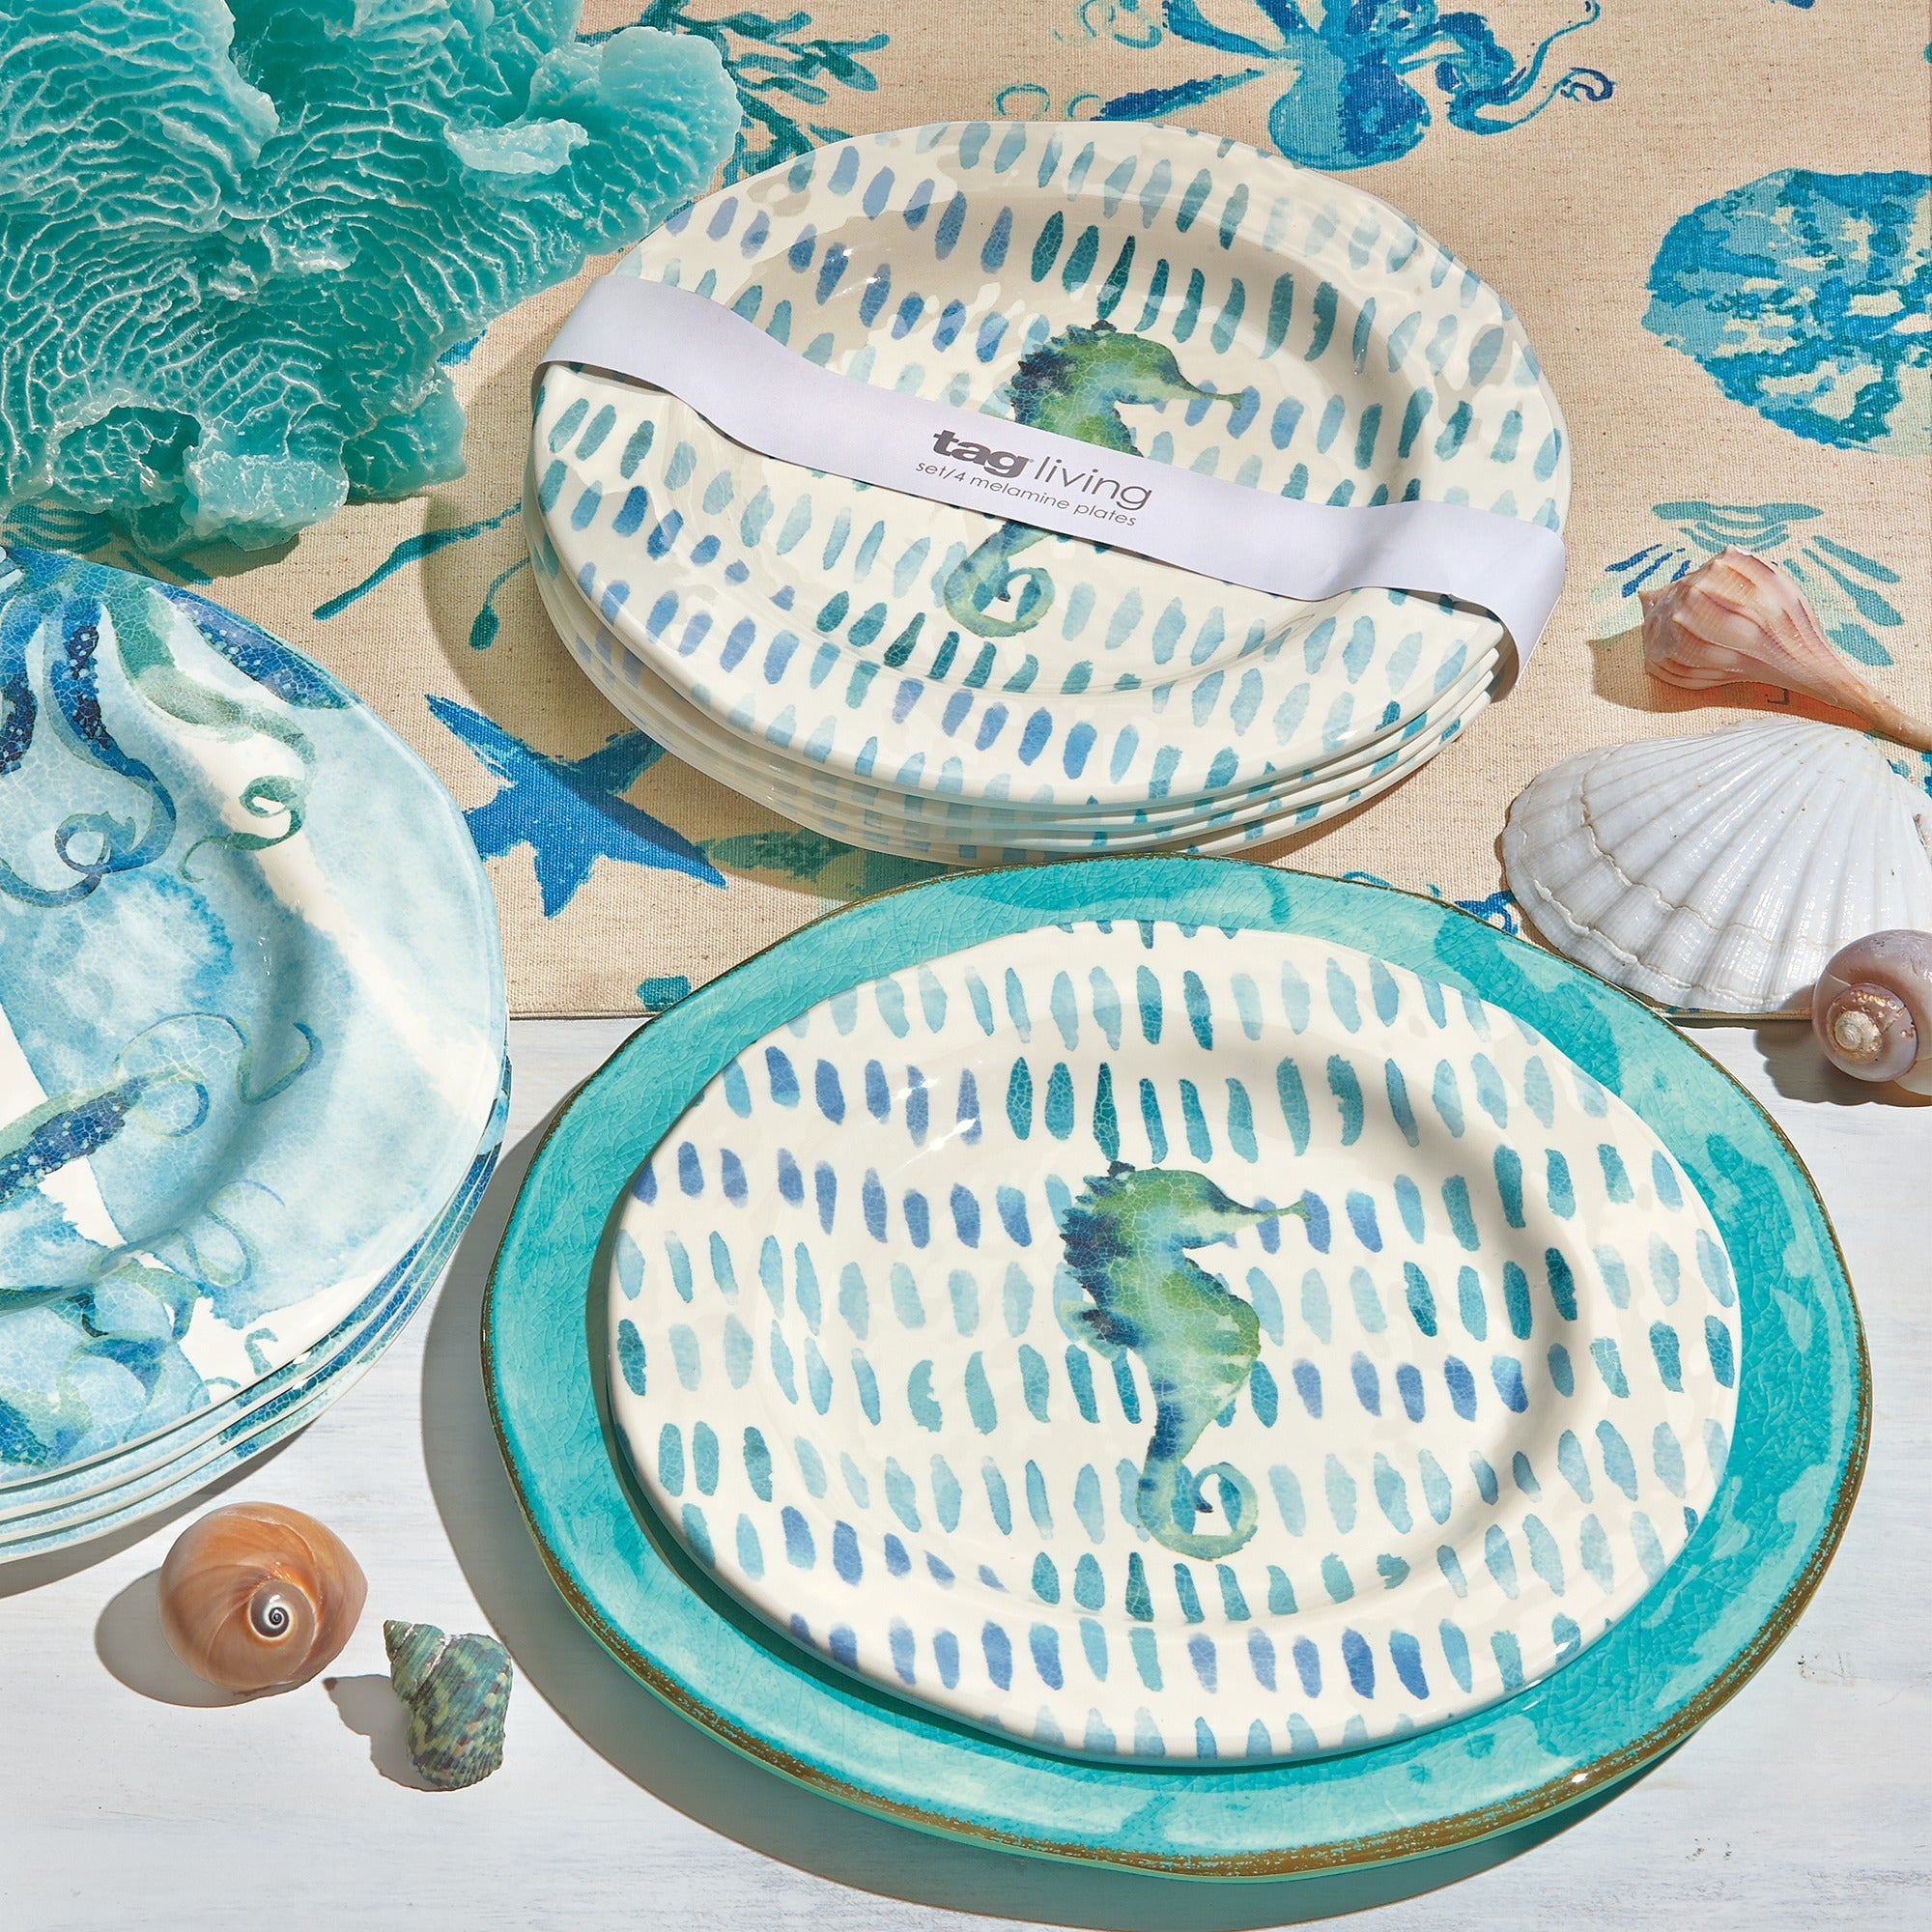 TAG Seahorse Melamine Salad Plates Ocean Blue - Free Shipping On Orders Over $45 - Overstock - 19005417  sc 1 st  Overstock & TAG Seahorse Melamine Salad Plates Ocean Blue - Free Shipping On ...